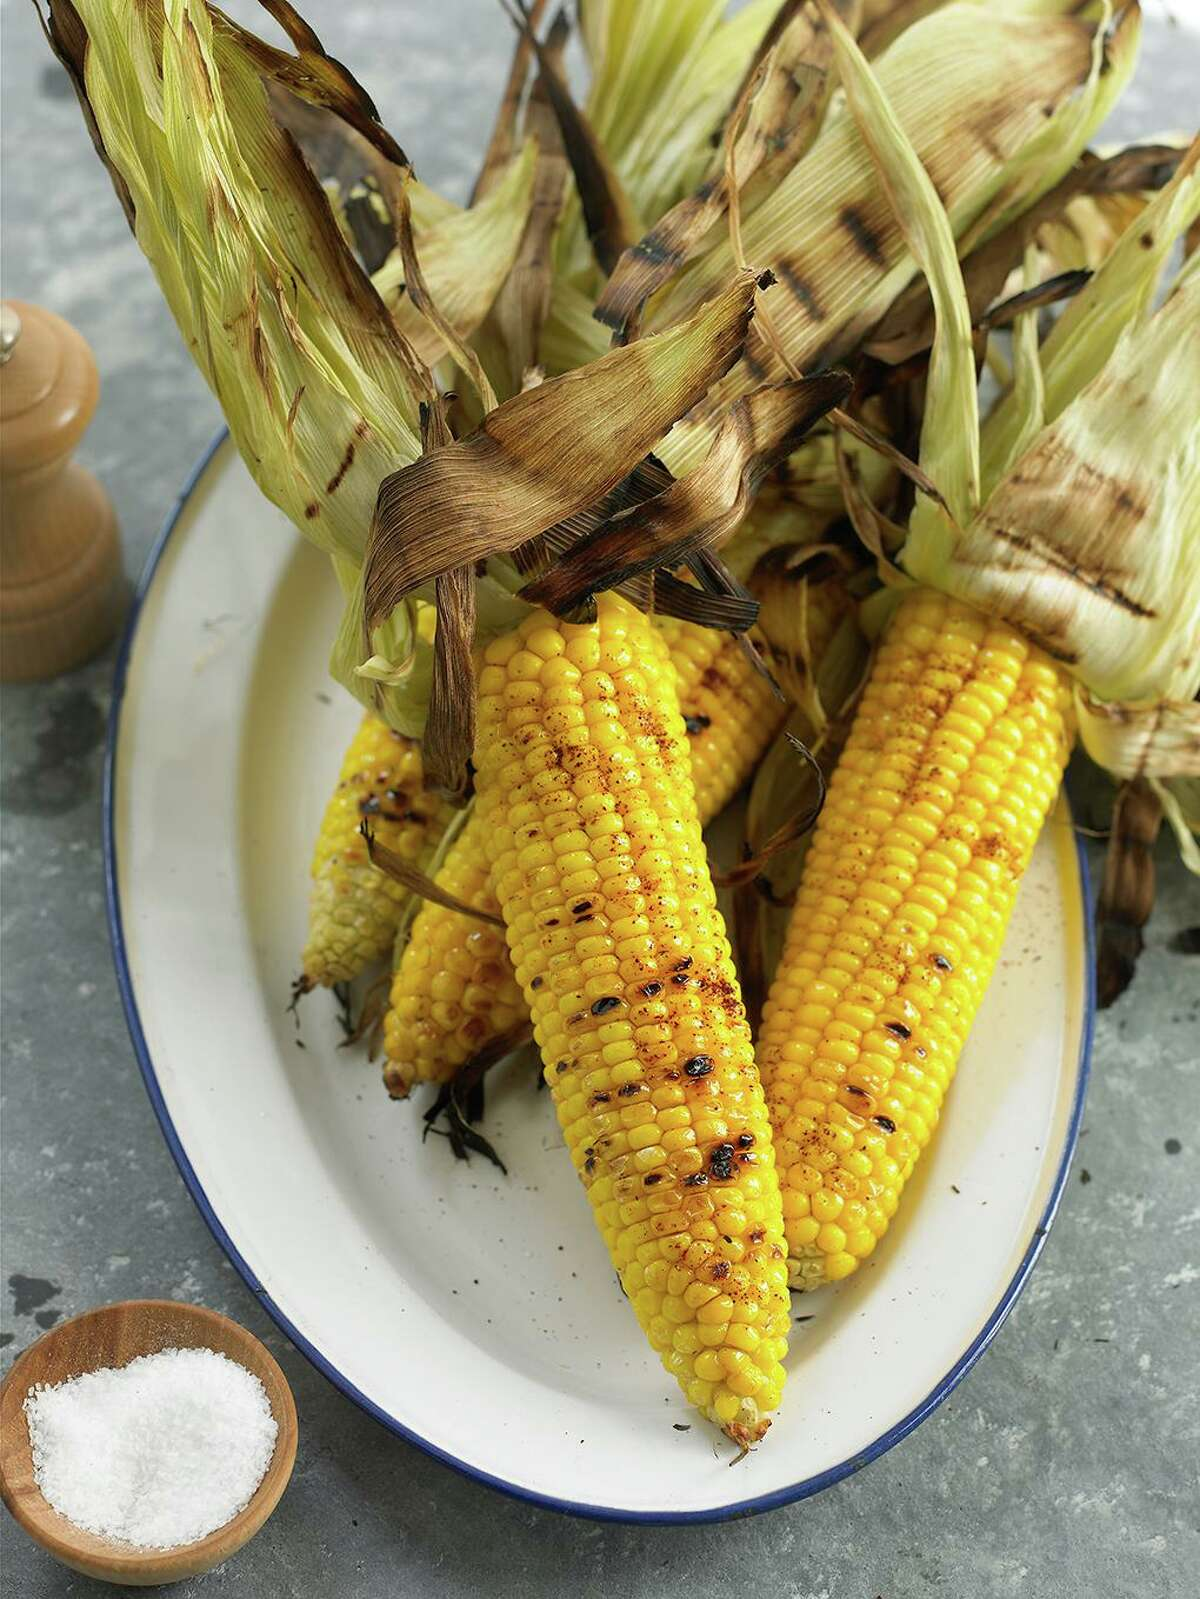 For the best flavor, grill whole ears of sweet corn with the husks on for about 20 minutes over medium heat.